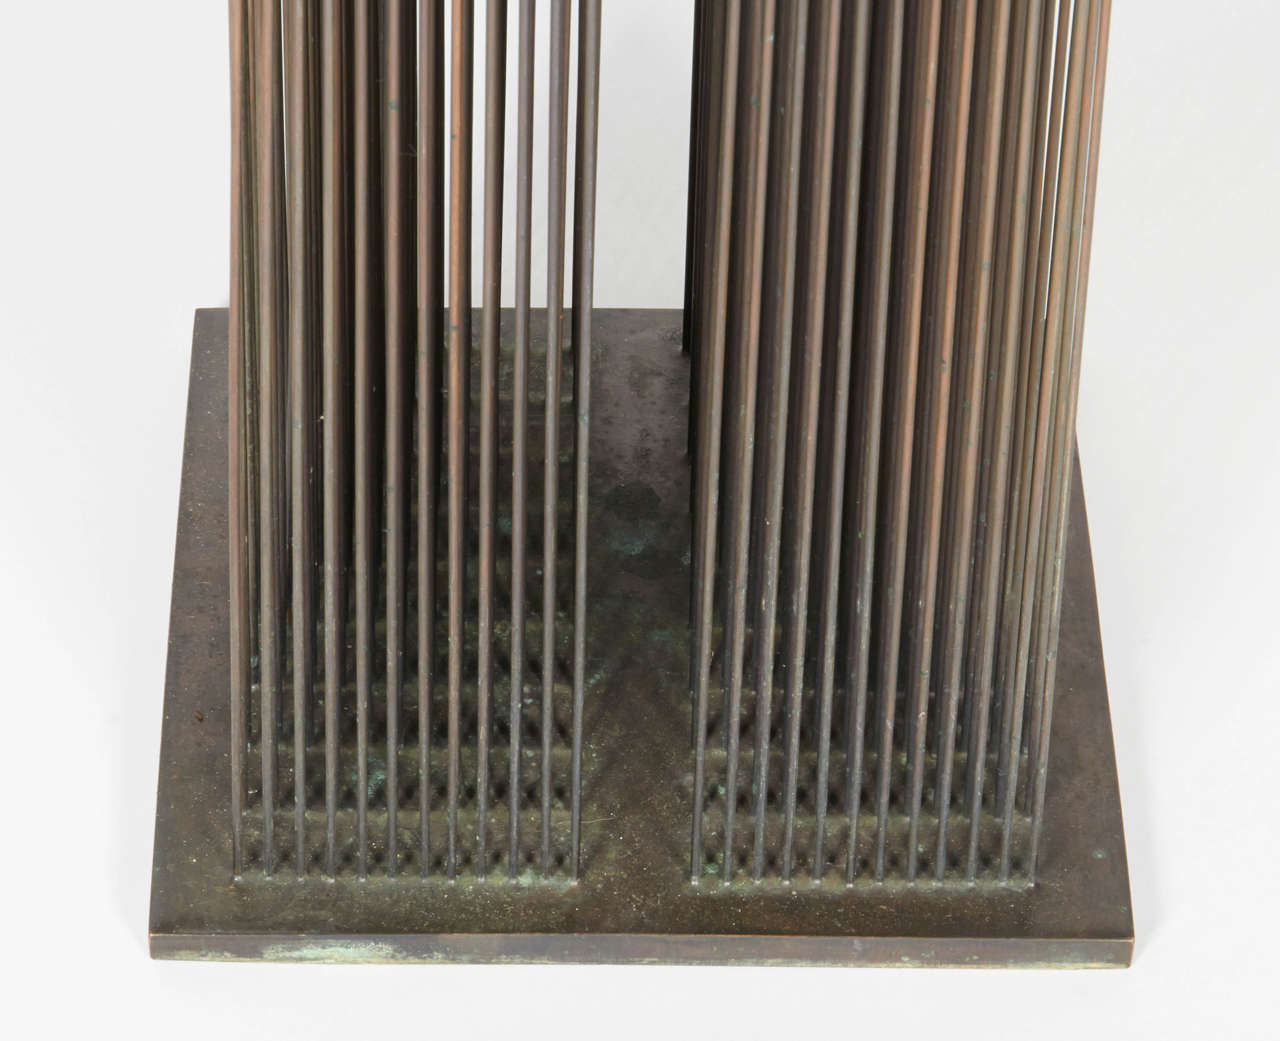 American Sonambient Sculpture by Harry Bertoia For Sale